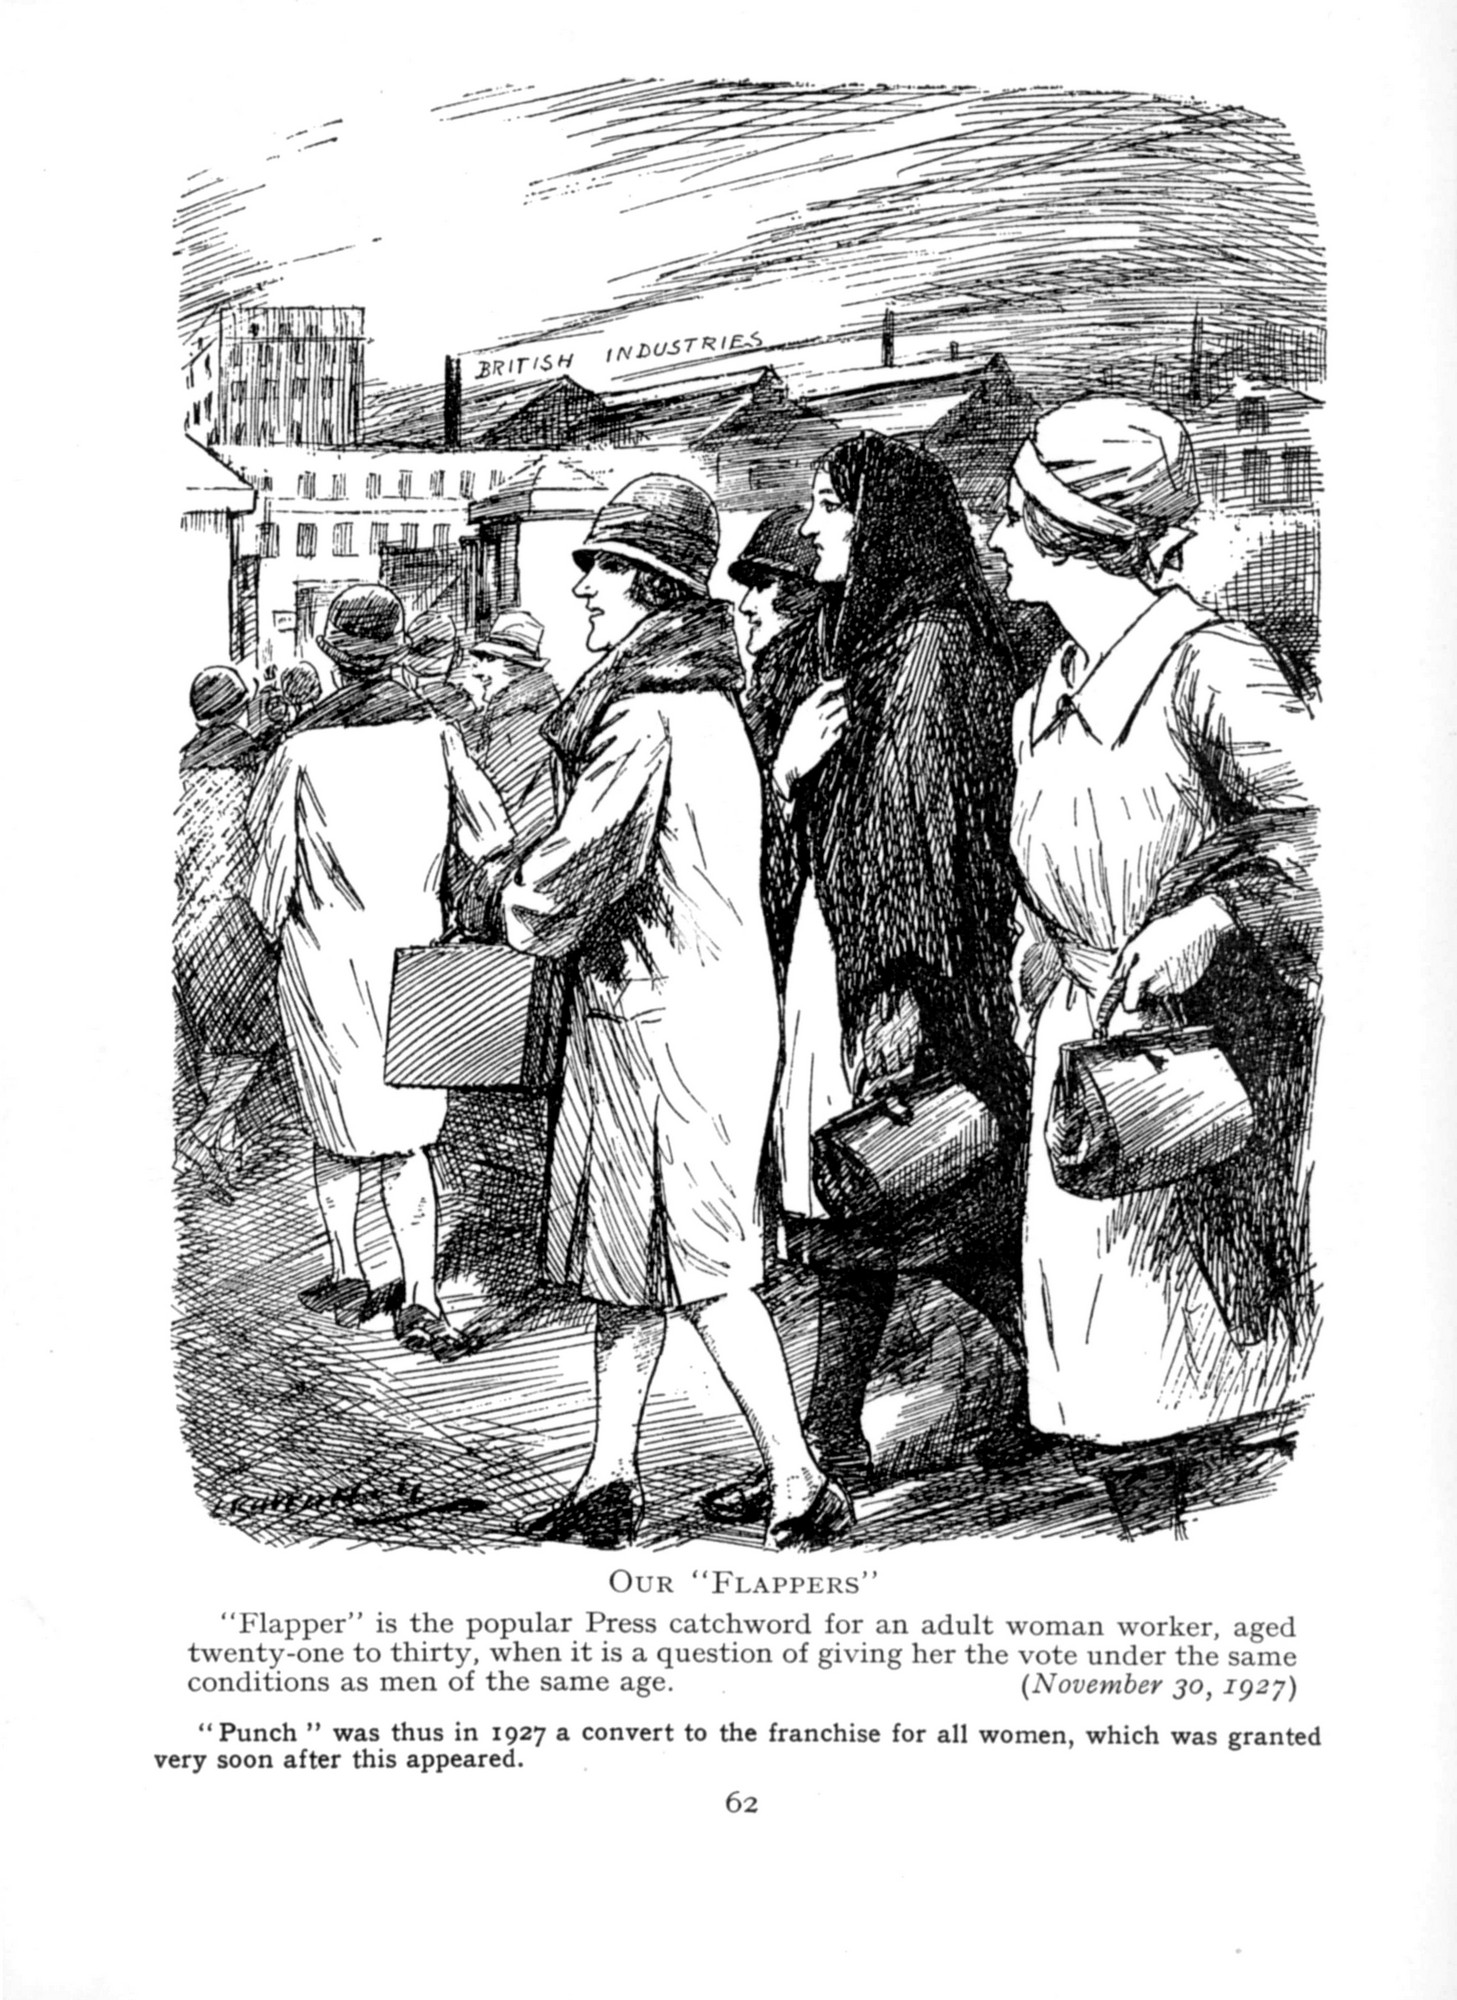 1927 Punch Cavalcade p62 - Our Flappers